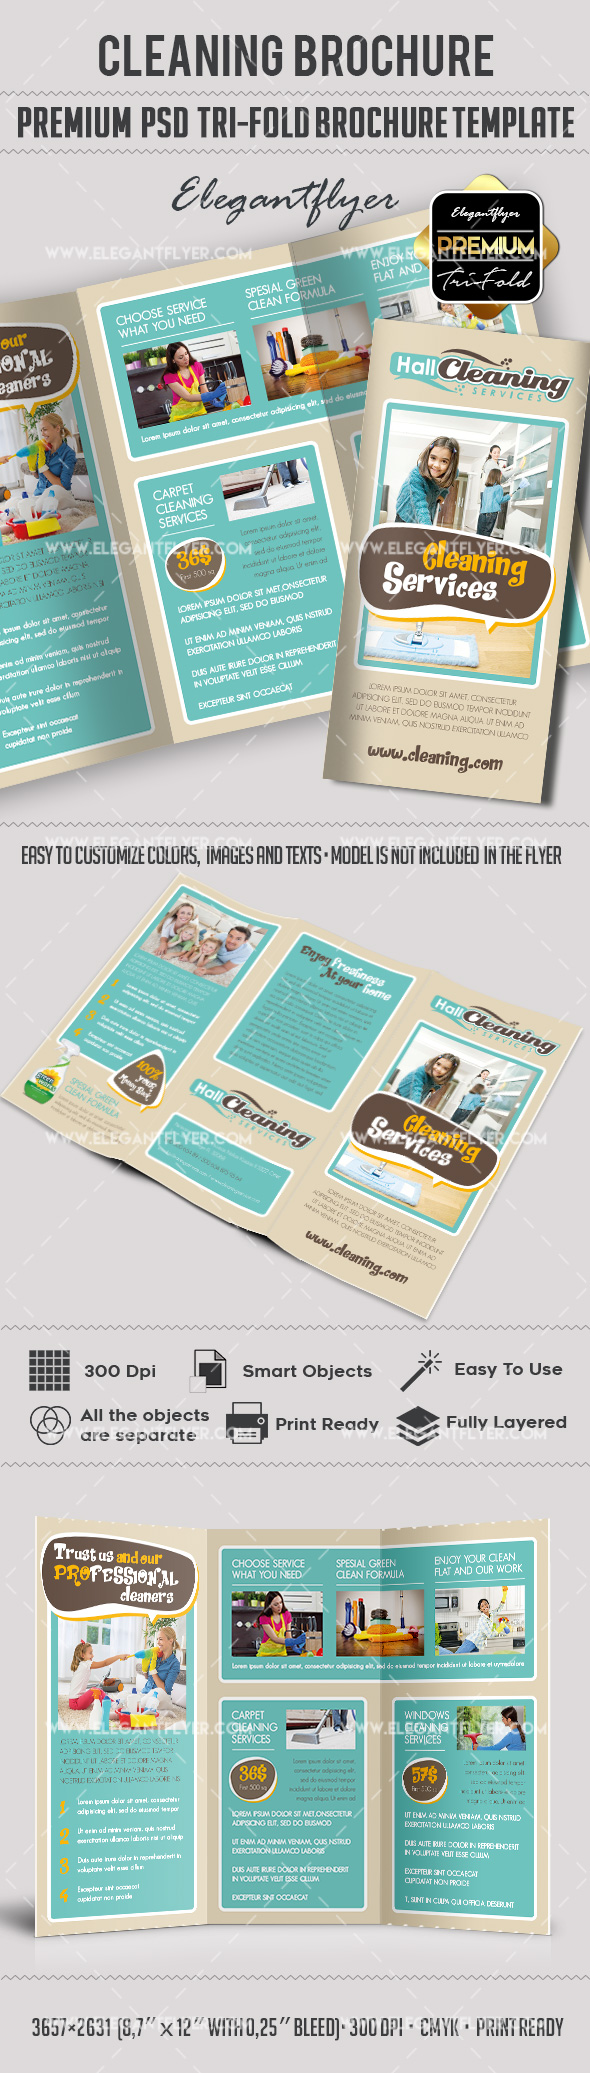 Psd brochure for cleaning services by elegantflyer for Tri fold brochure template psd